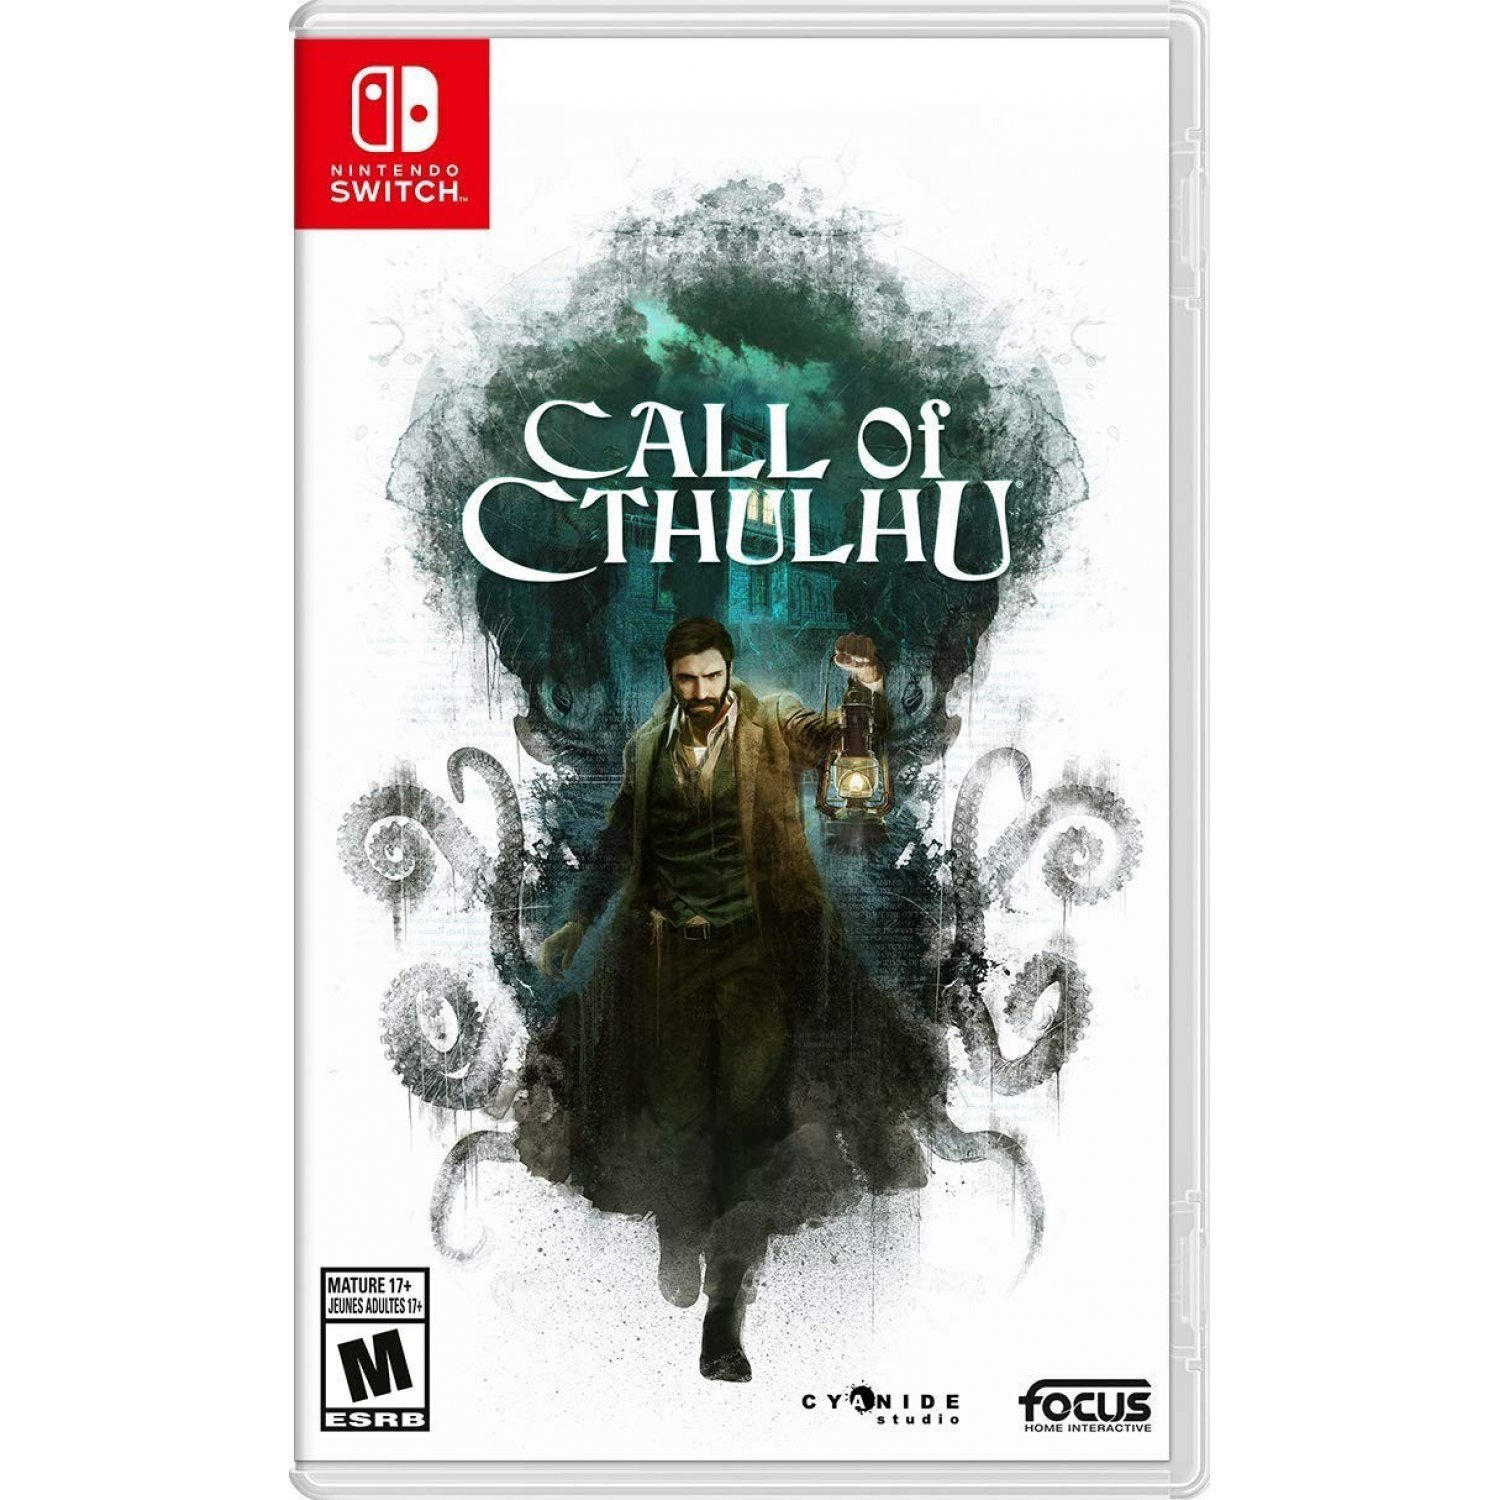 call-of-cthulhu-the-official-video-game-598819.8.jpg